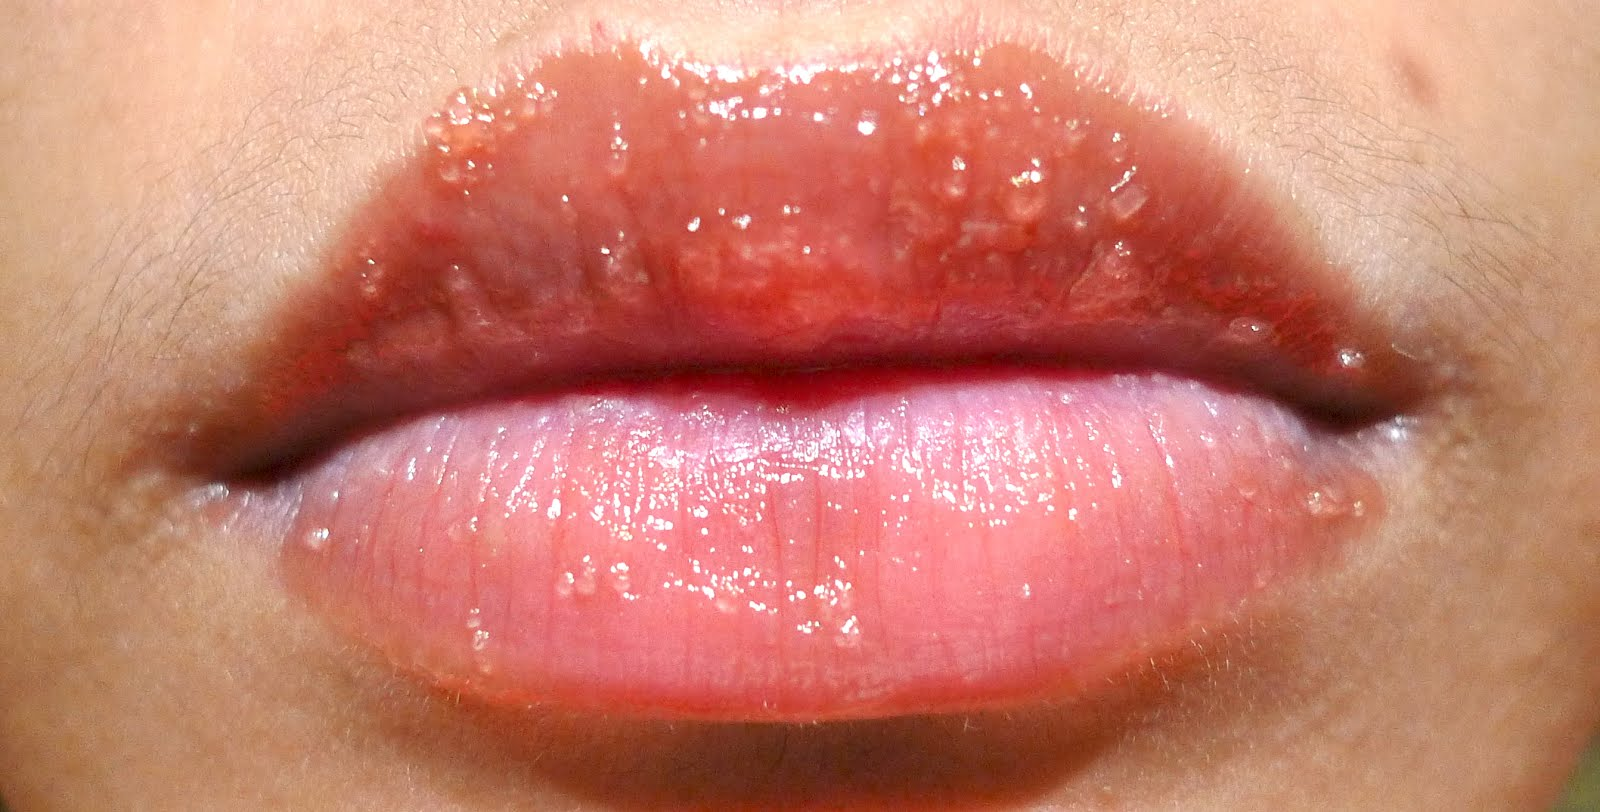 Bumps+On+Lips+Allergic+Reaction Apply liberally on lips and let it ...